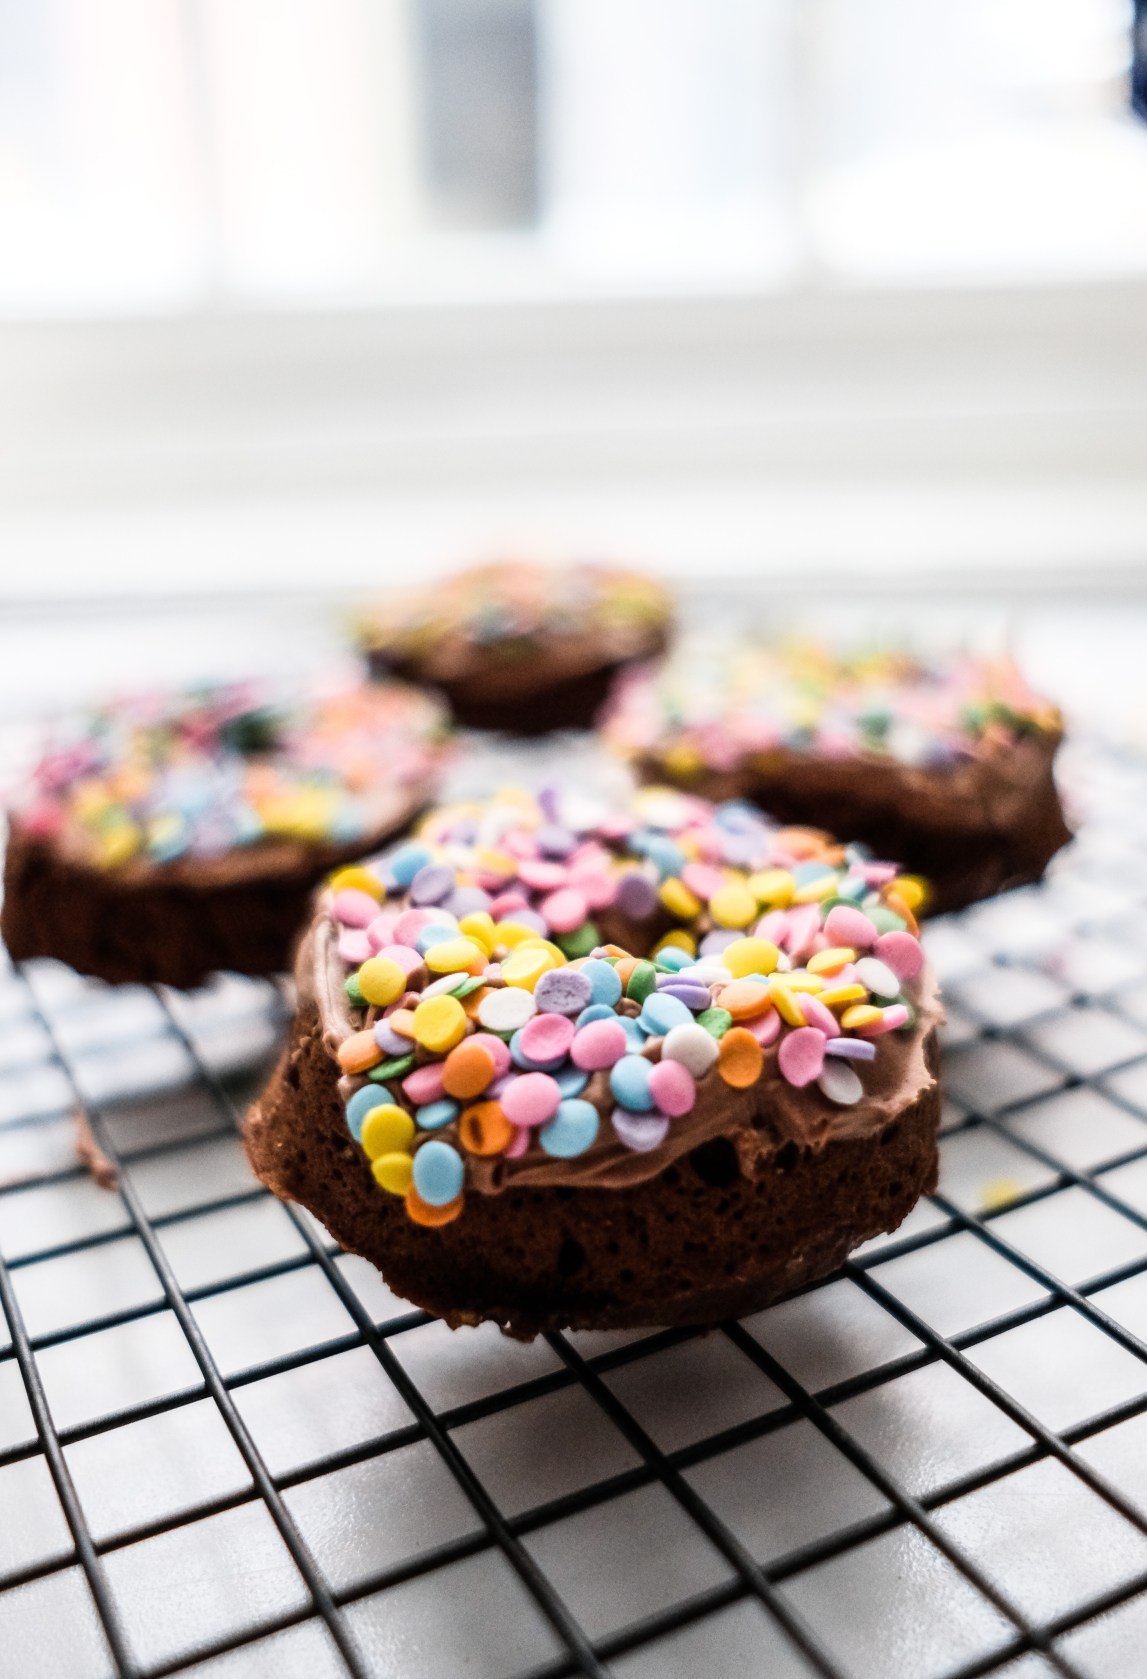 Lifestyle Blog Chocolate and Lace shares her recipe for Baked Chocolate Donuts.